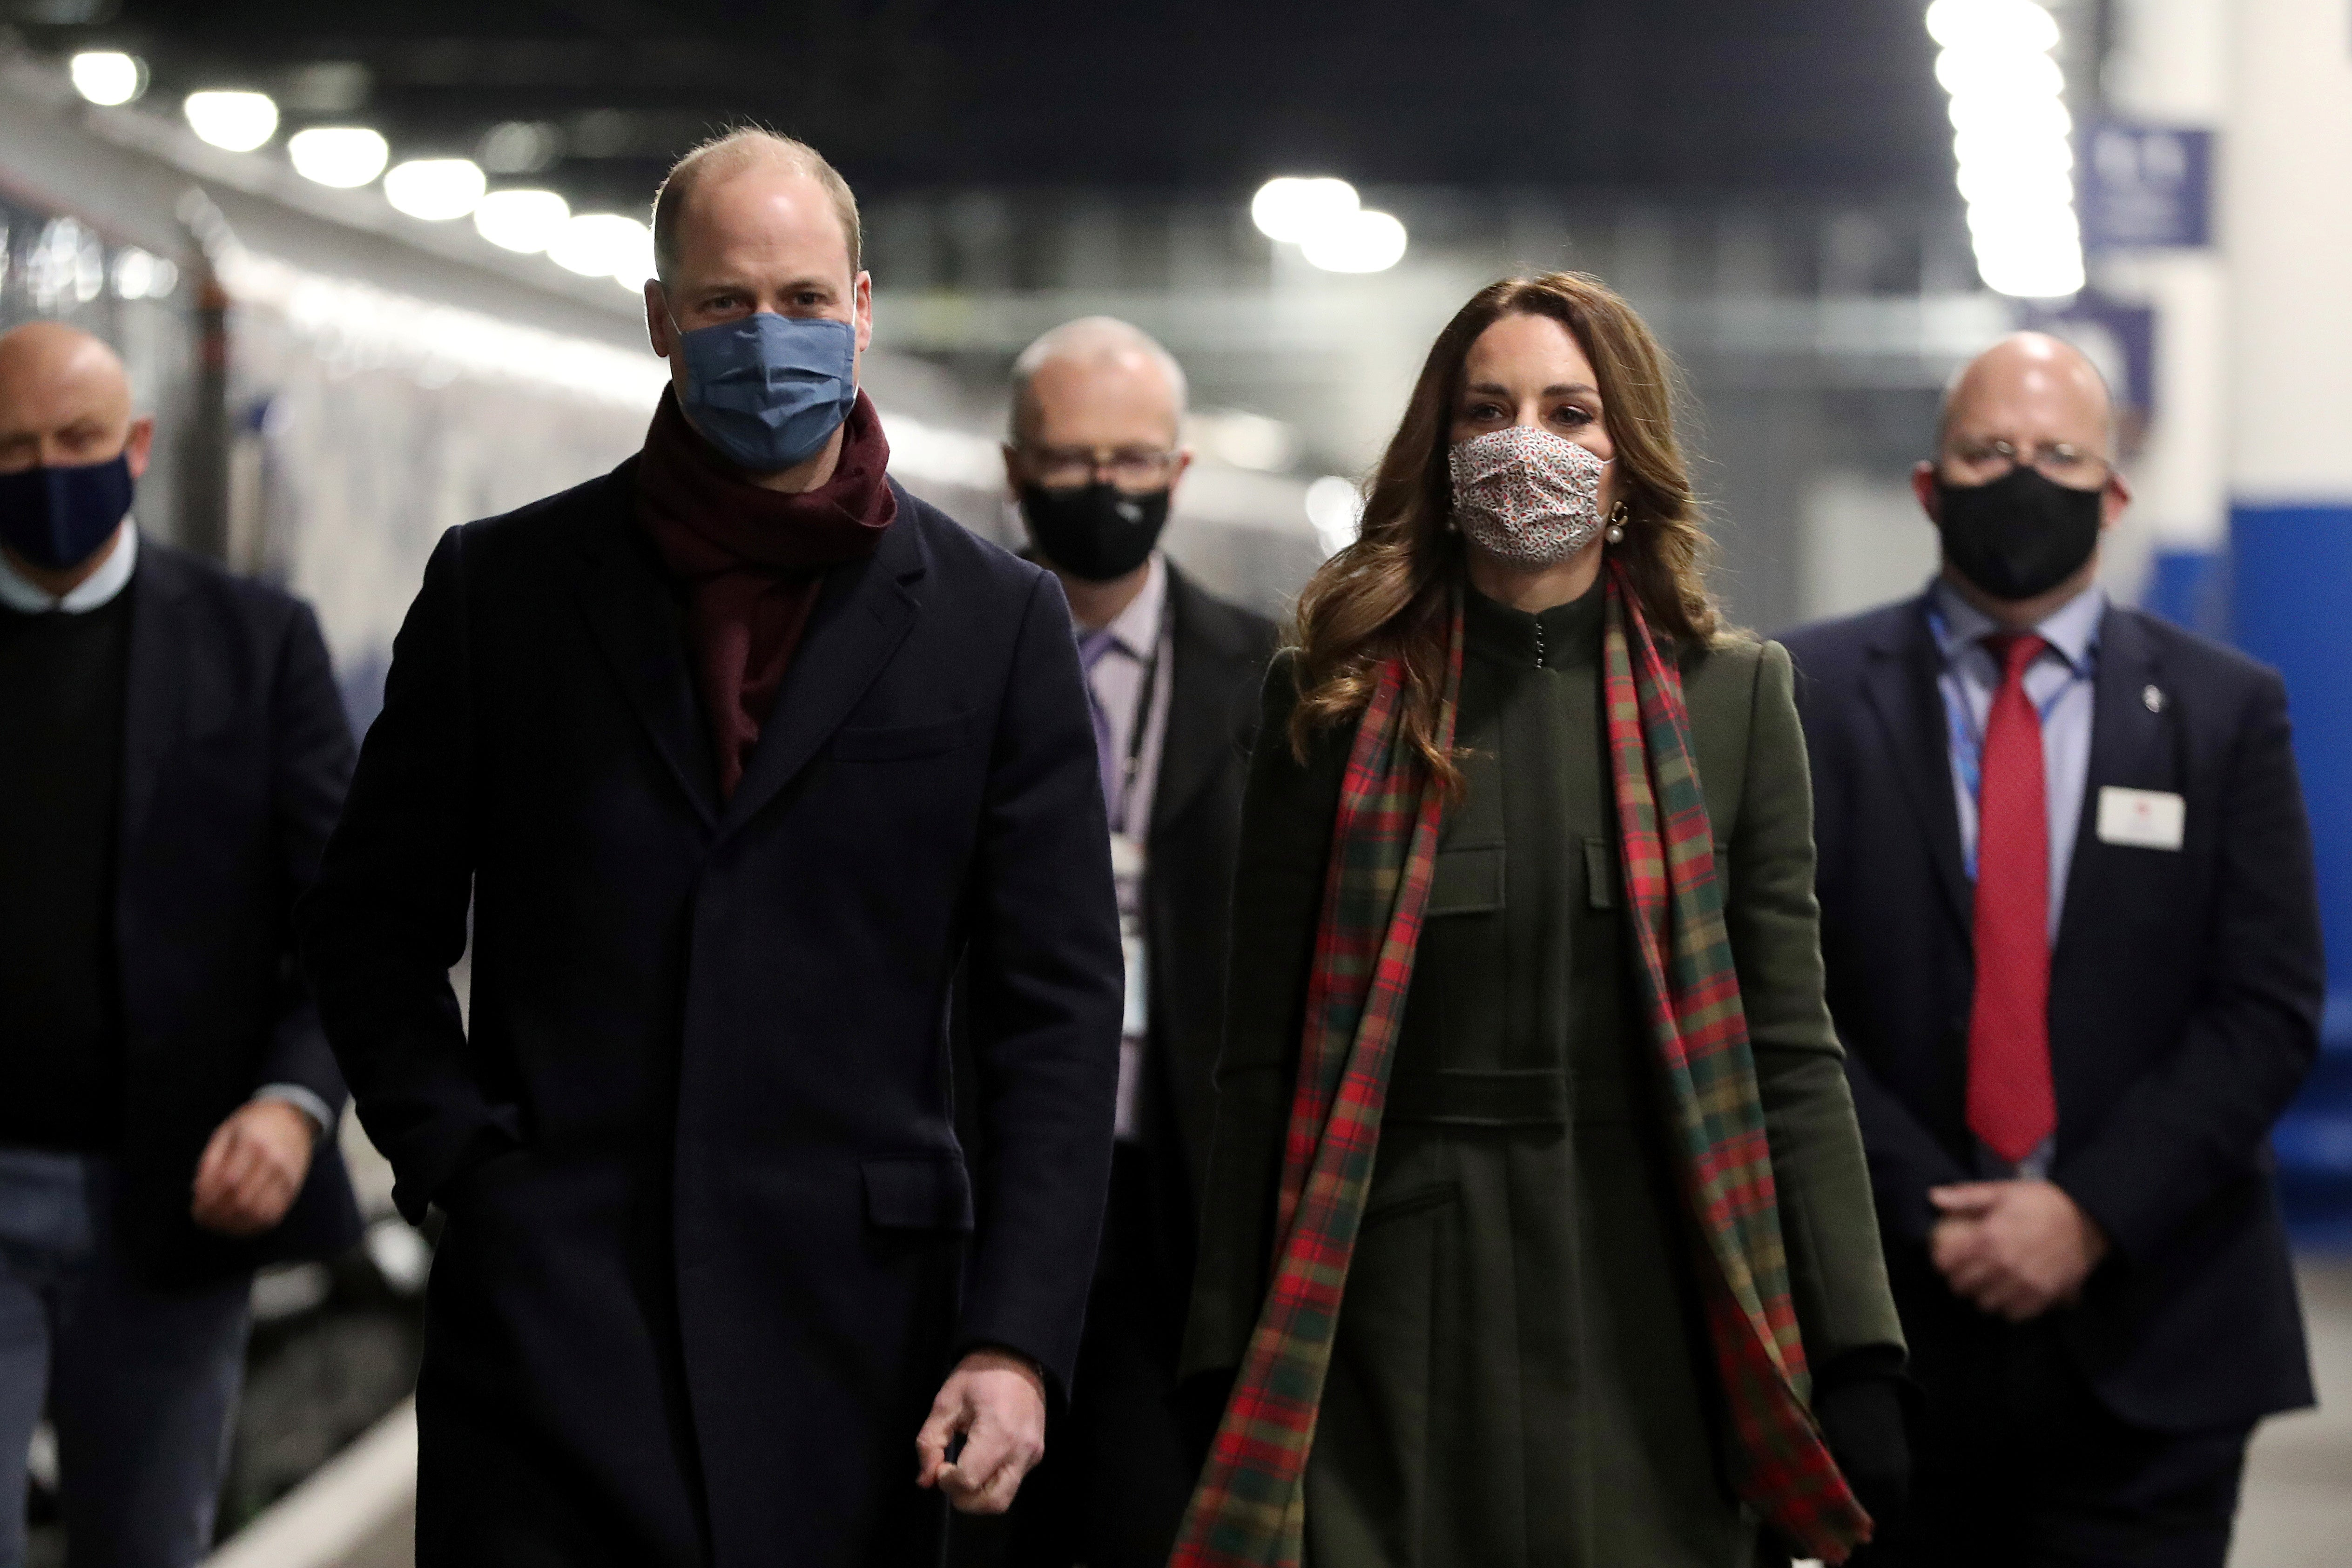 Kate Middleton and Prince William begin 1,200 mile train tour to thank key workers